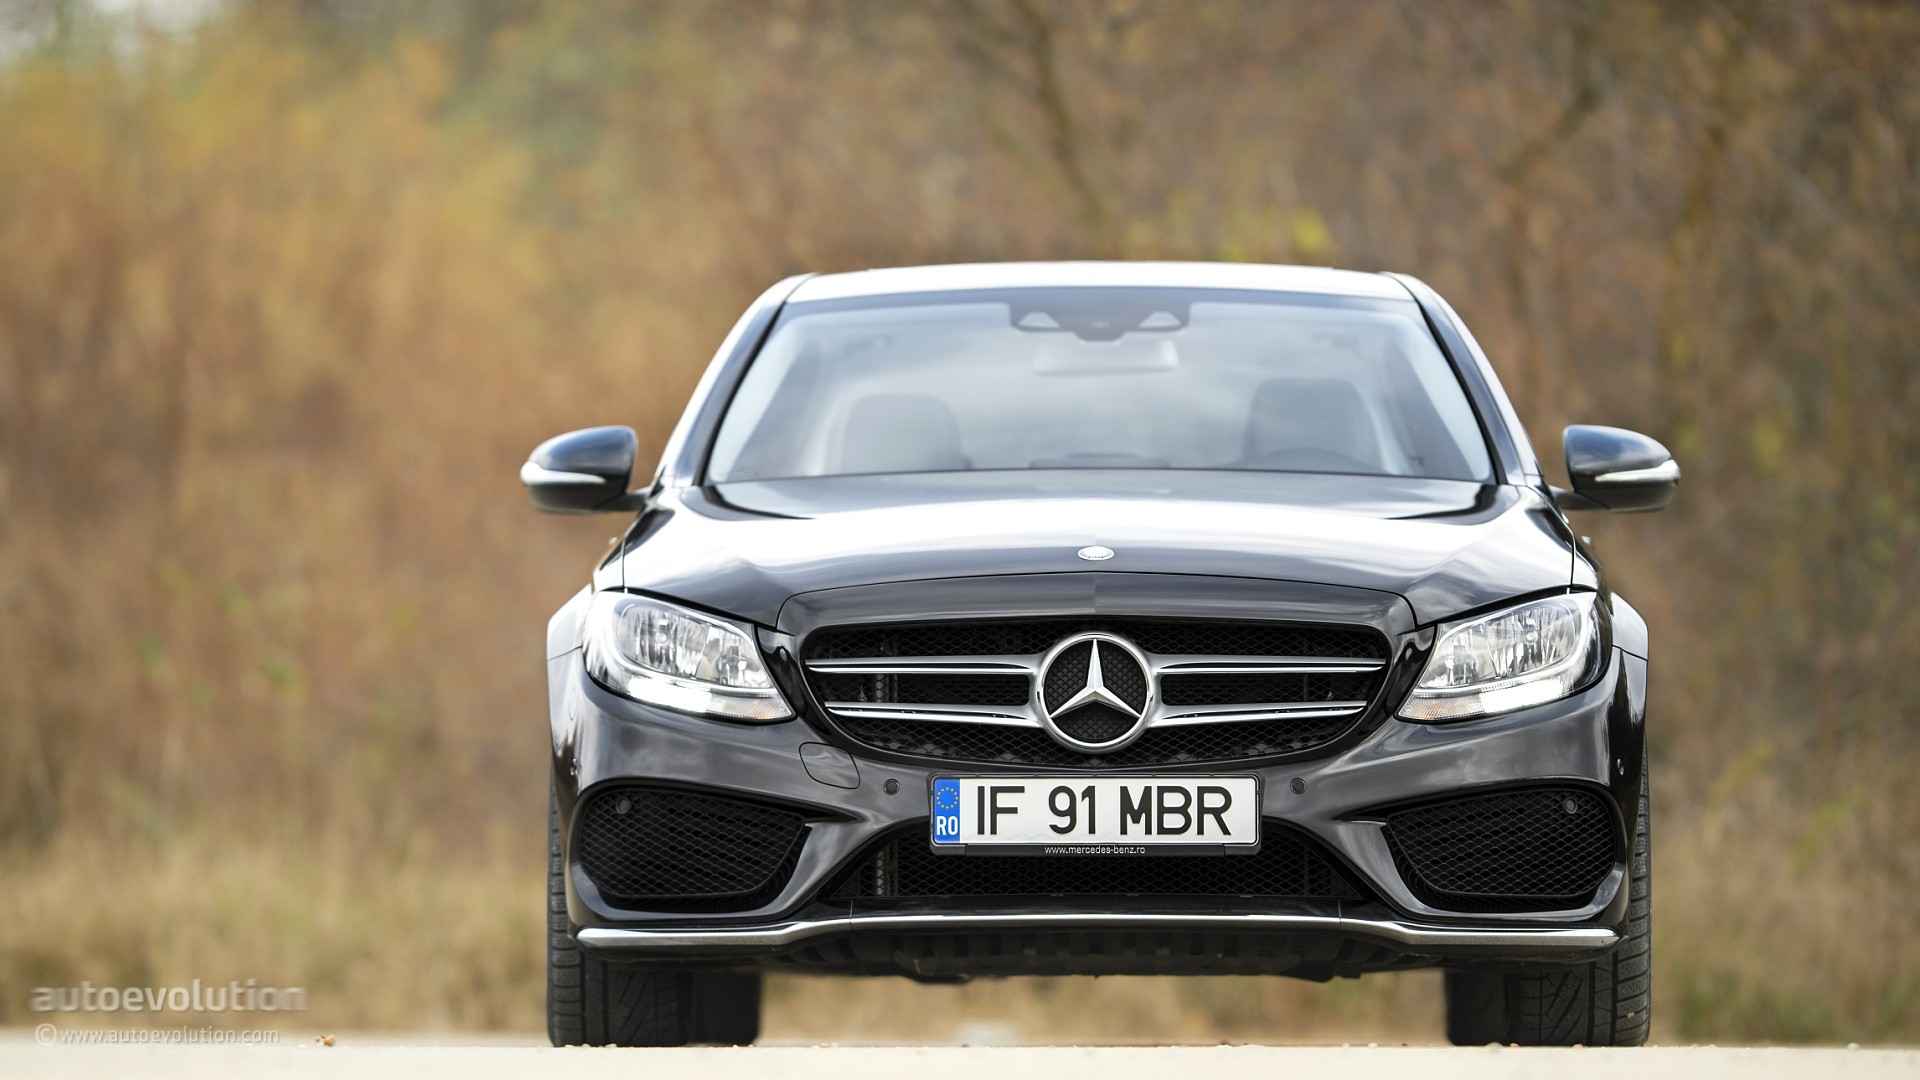 2015 mercedes benz c class hd wallpapers they call it for Baby mercedes benz